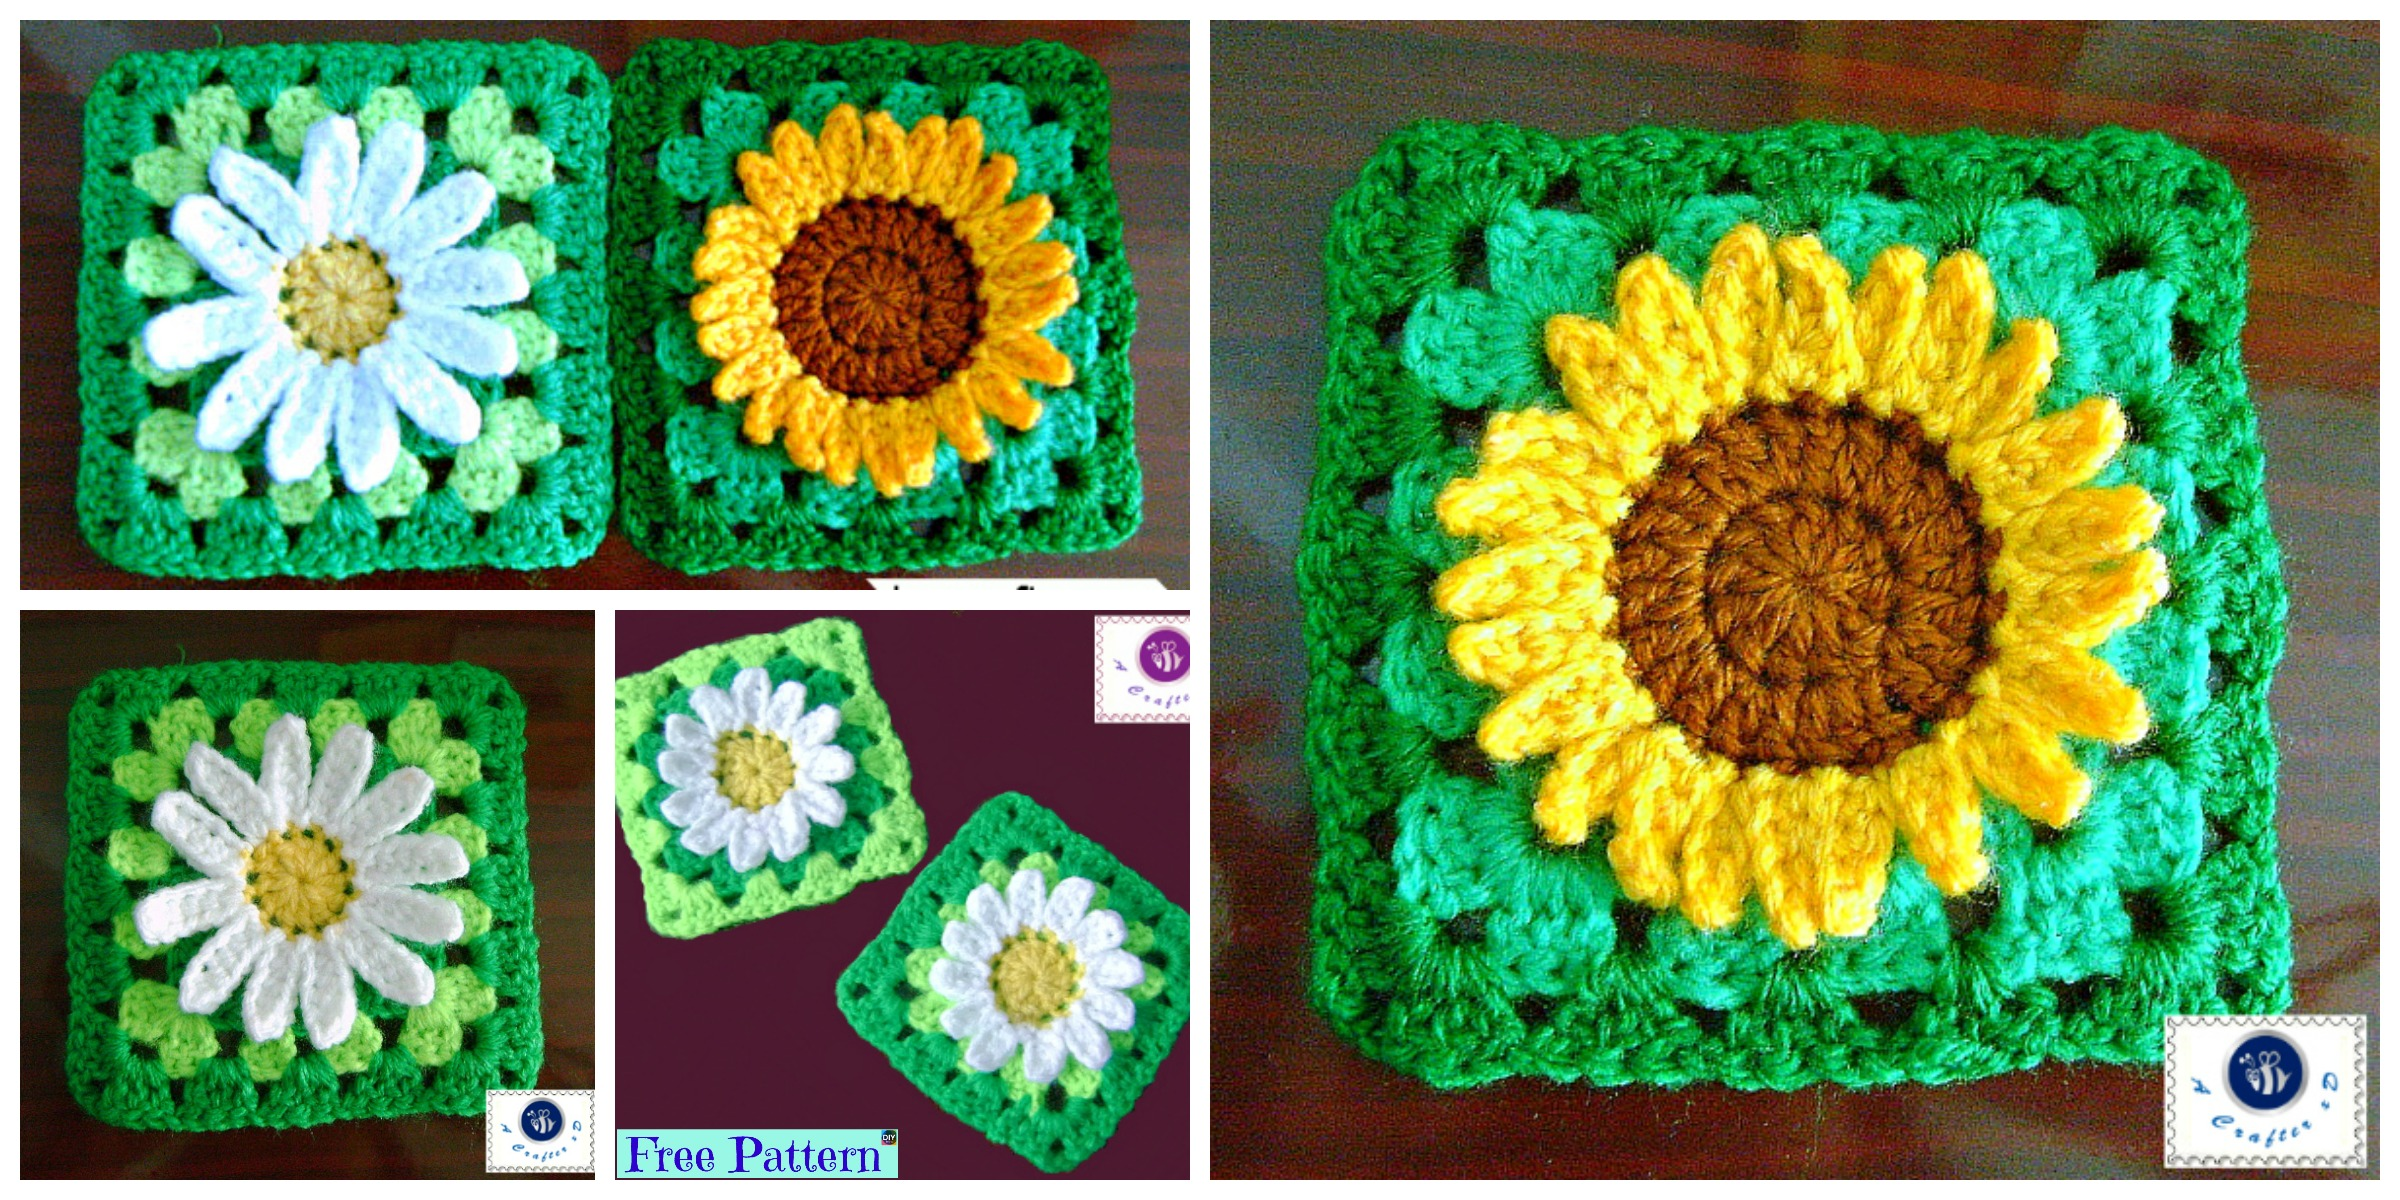 Crochet Sunflower Granny Square – Free Pattern